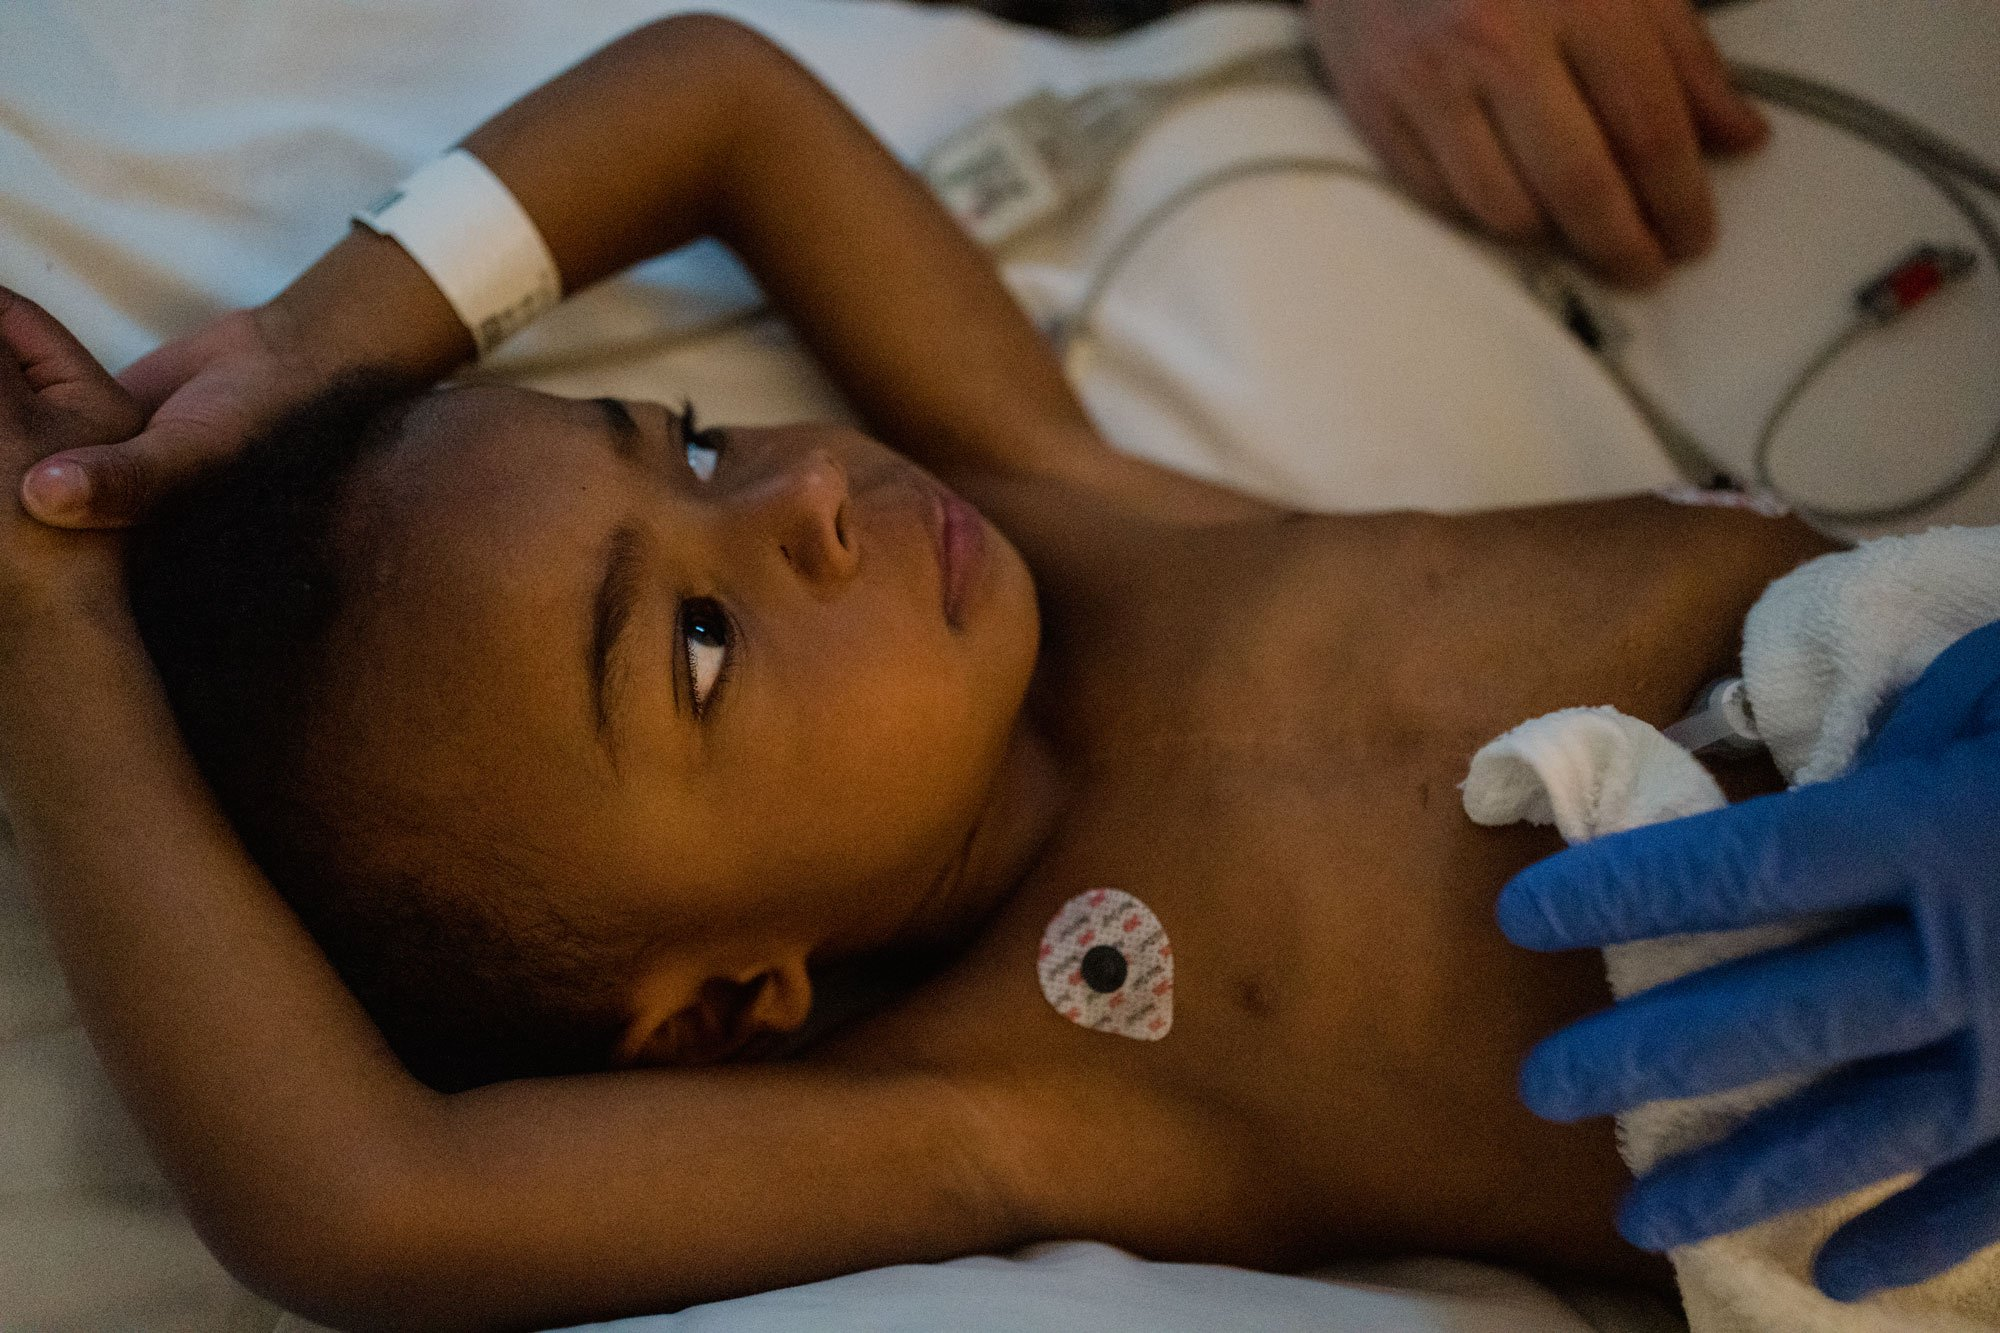 boy being examined